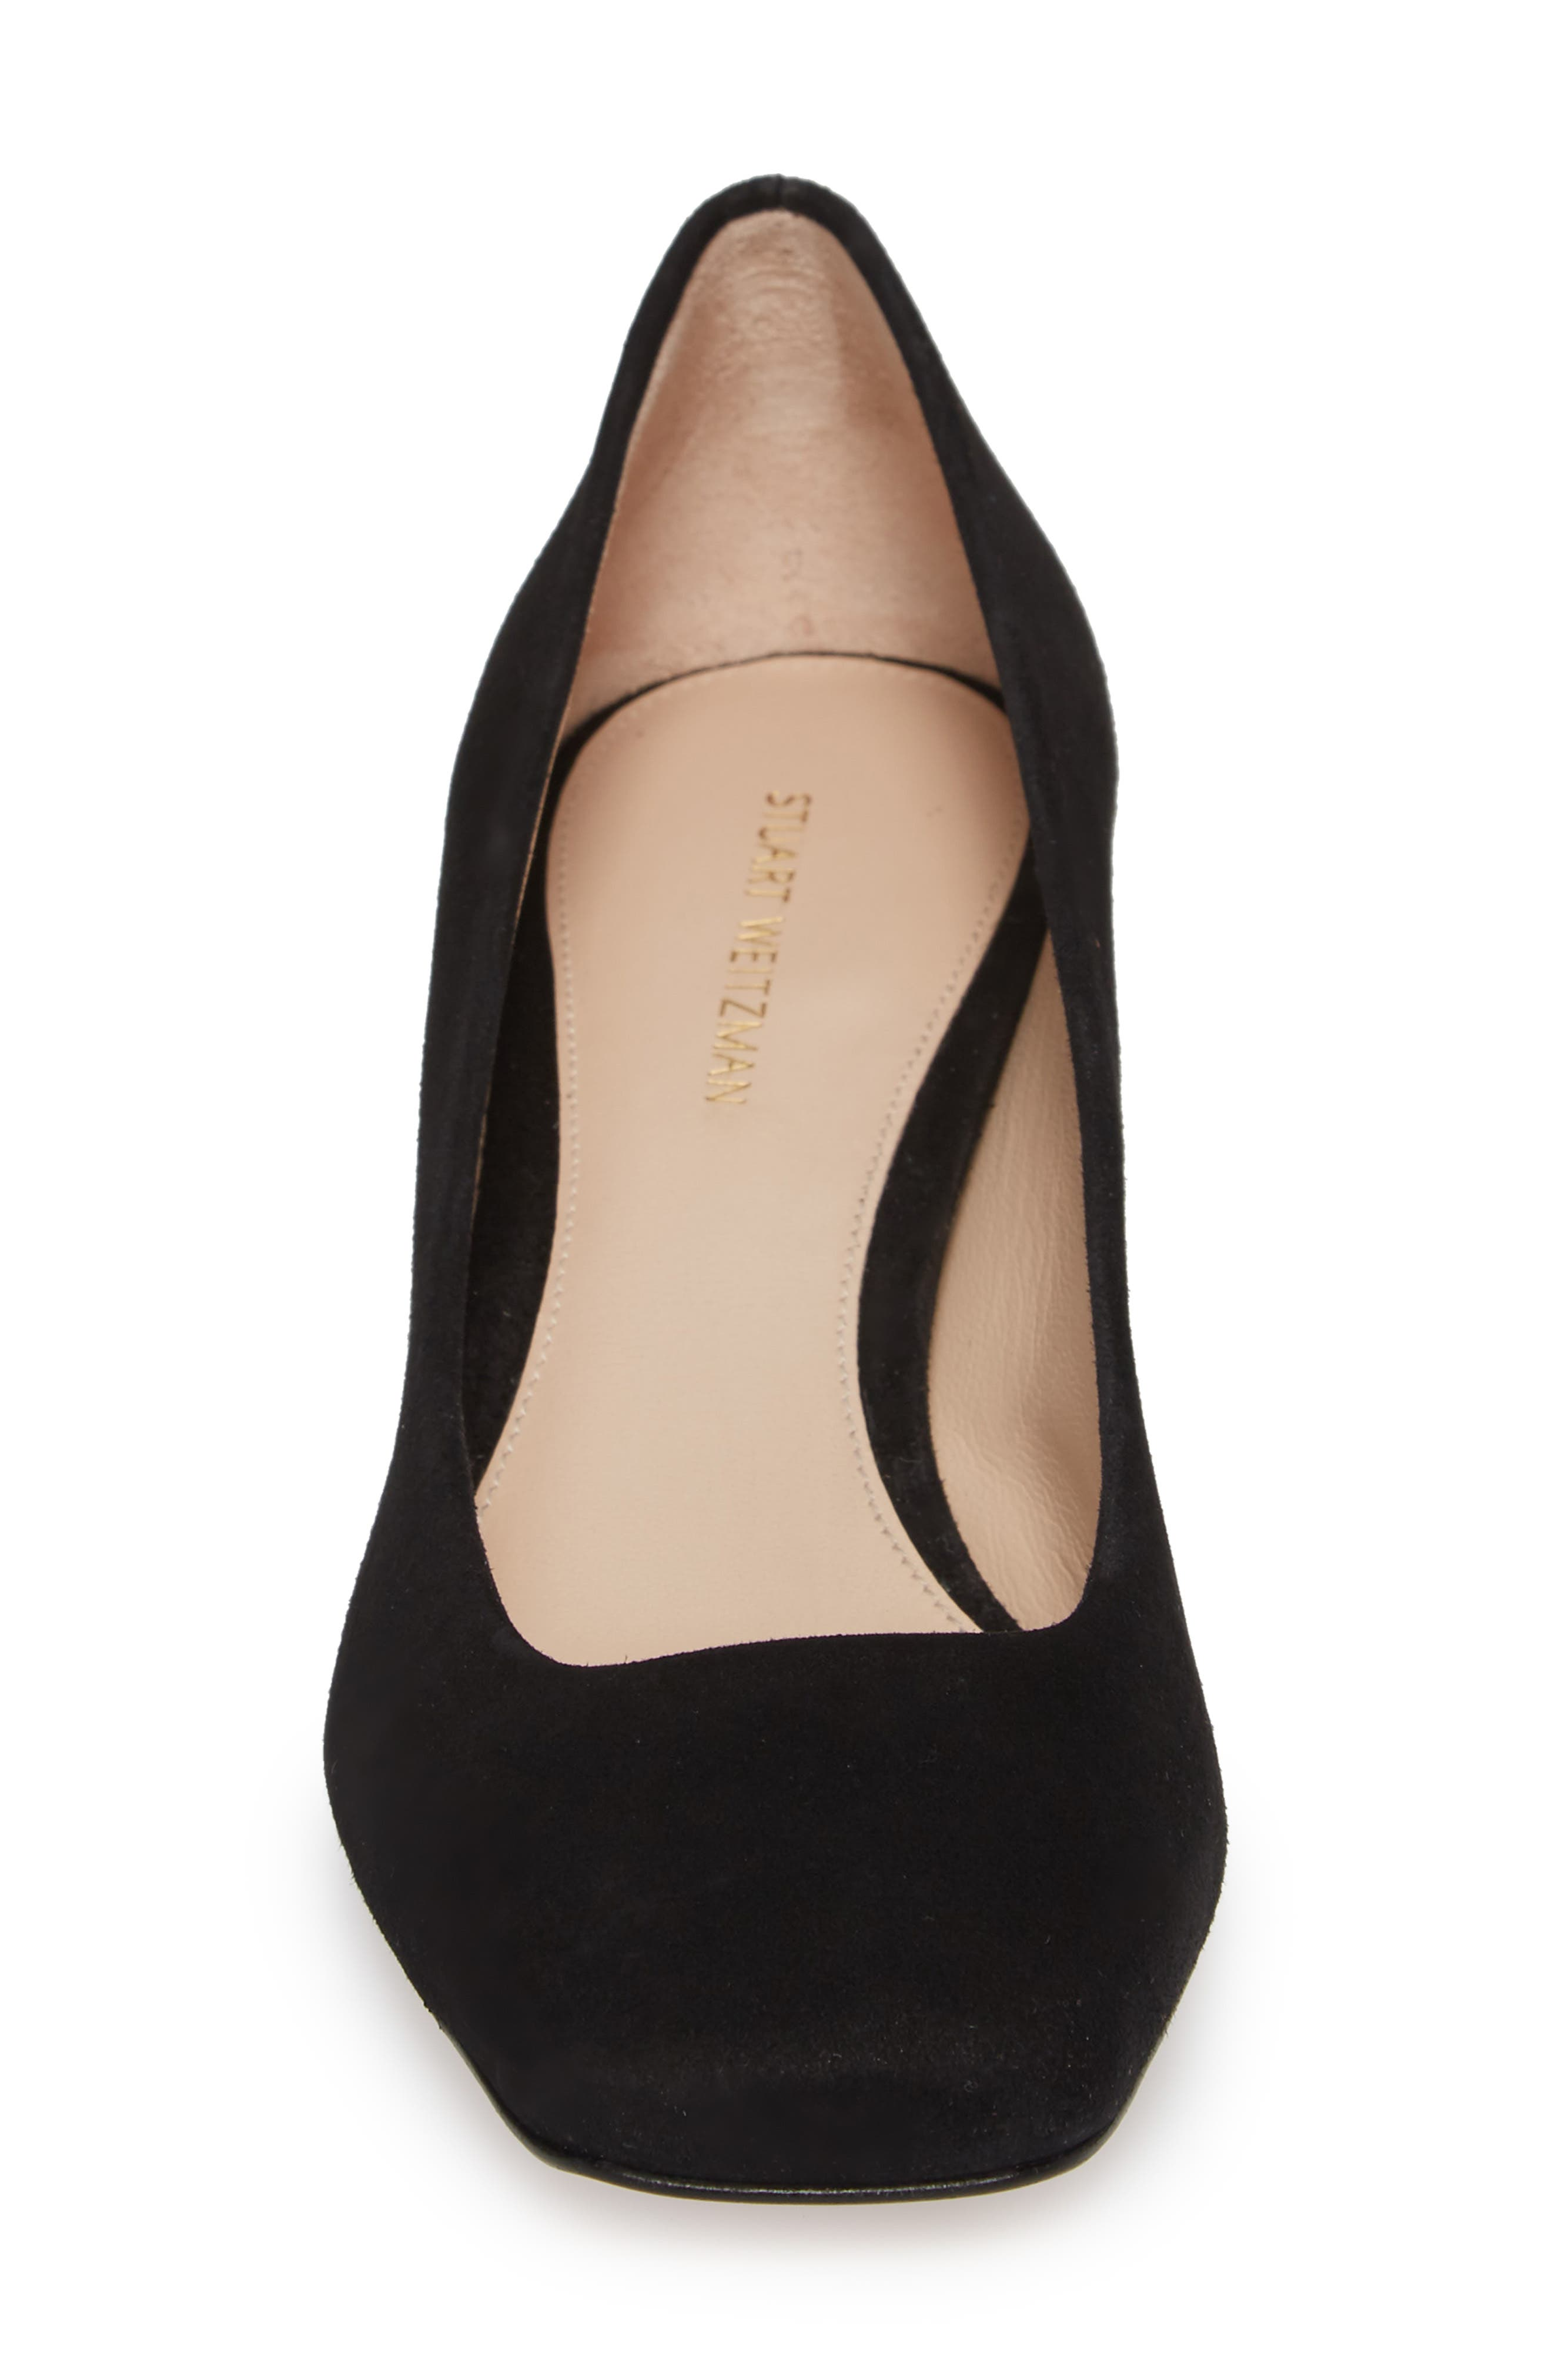 Chelsea Square Toe Pump,                             Alternate thumbnail 4, color,                             006